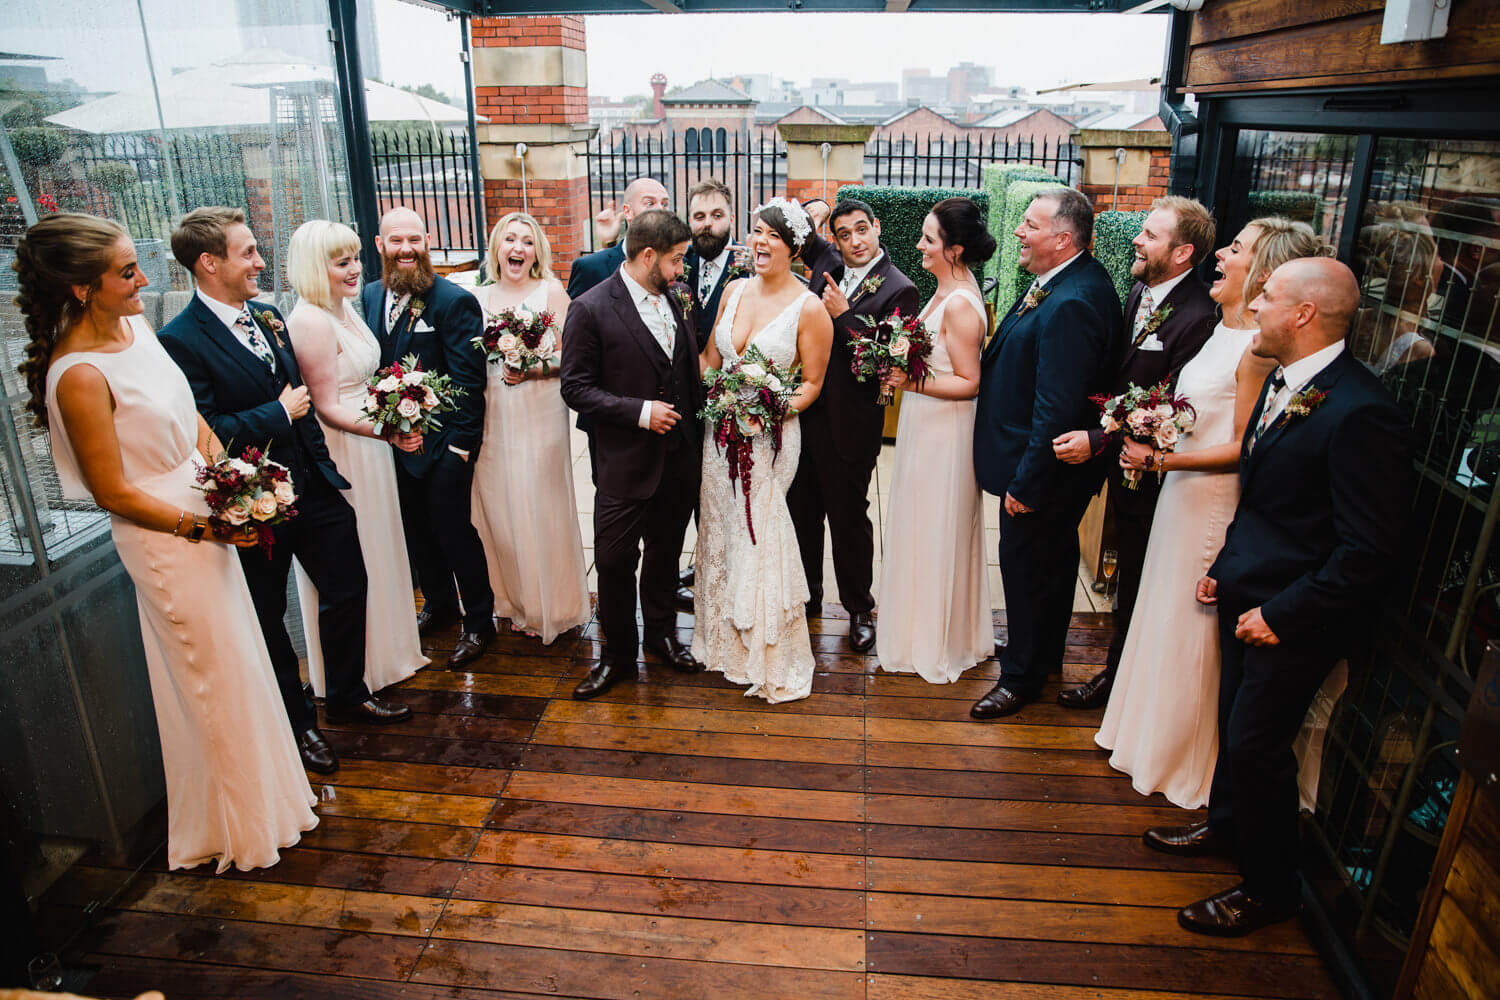 wedding party all together for group photograph as part of the great john street hotel wedding photography